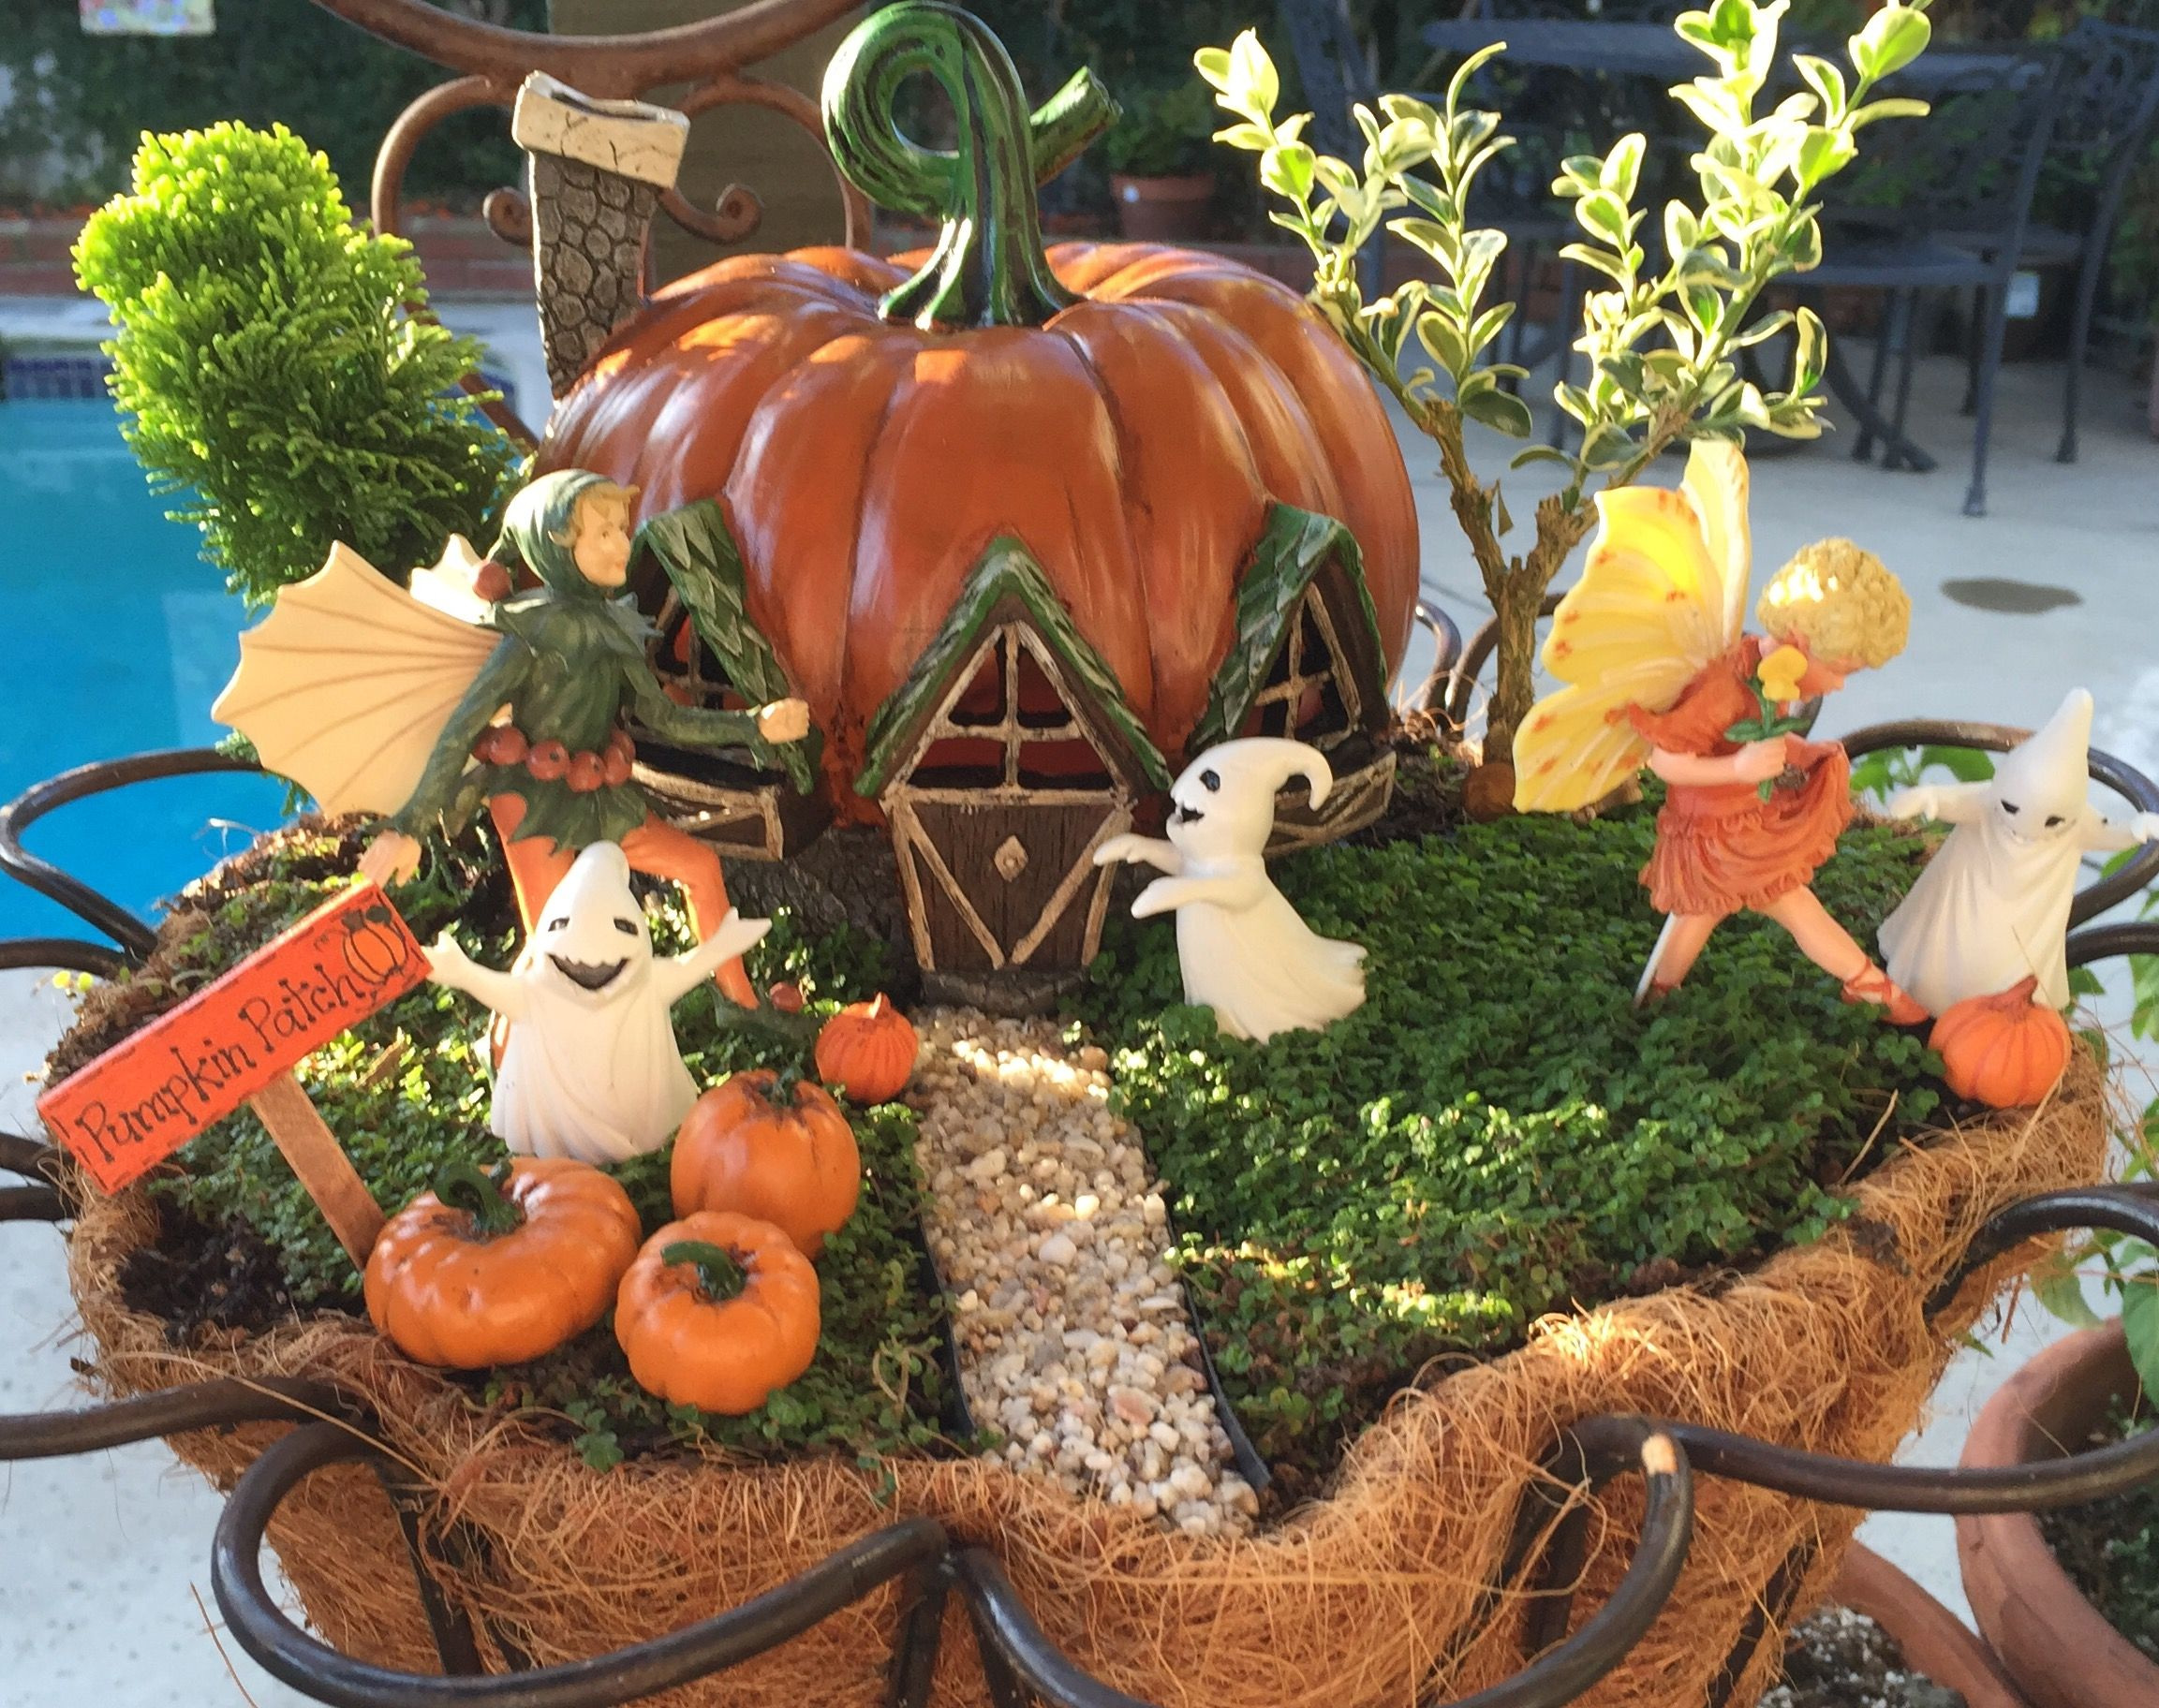 Miniature Fairy Garden - KICKIN\' IT AT THE PATCH is about two young ...